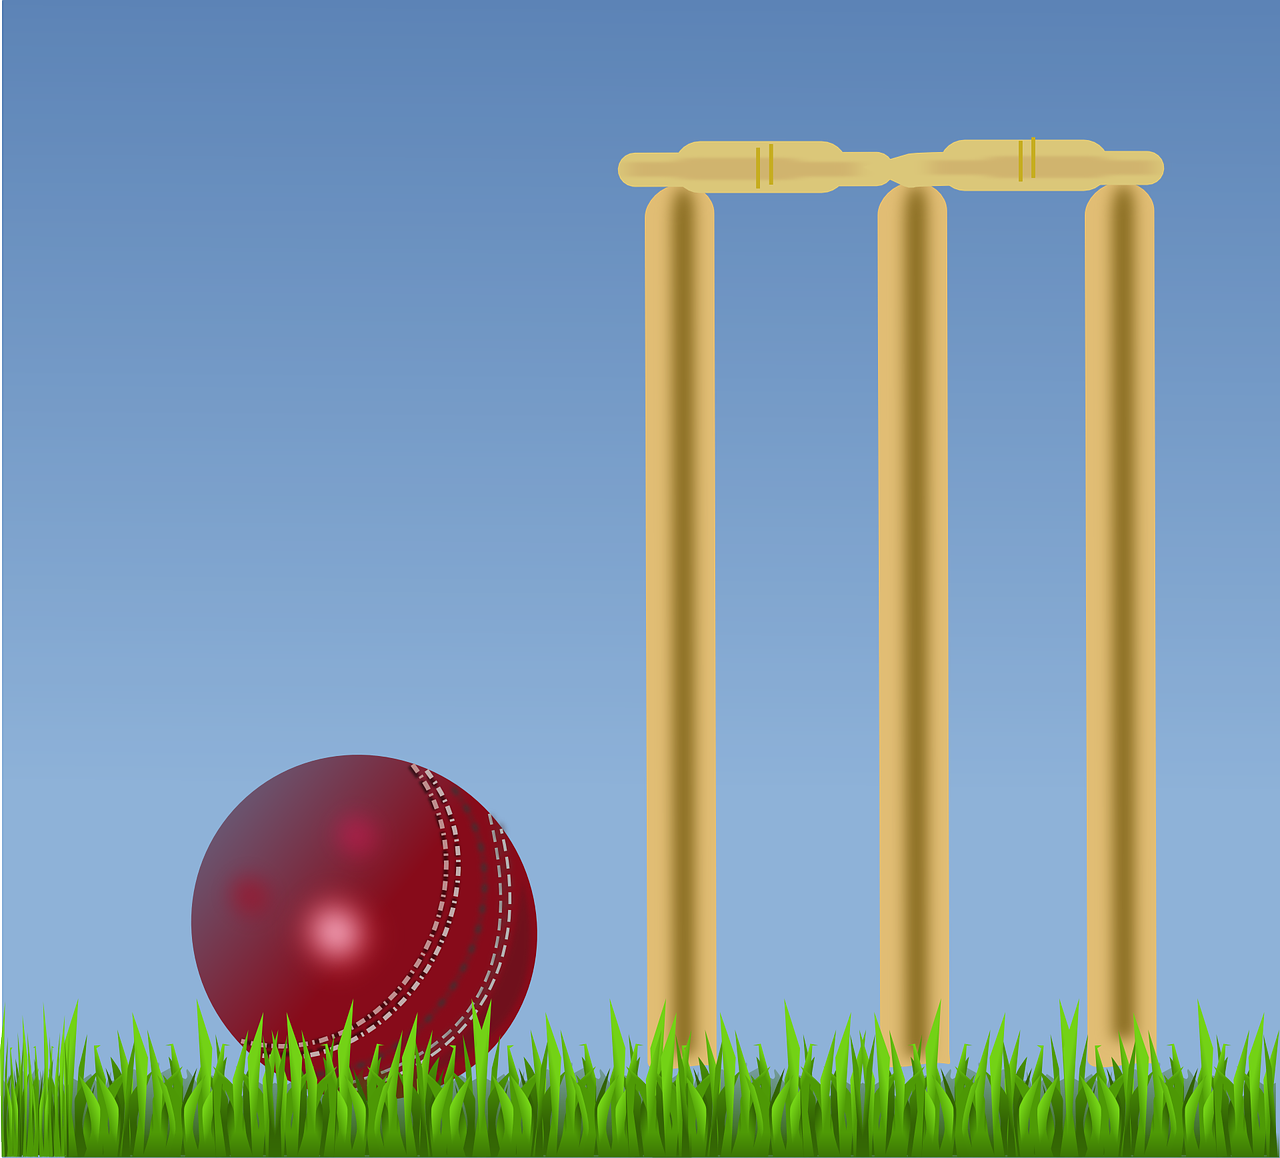 india and new zealand resume their match